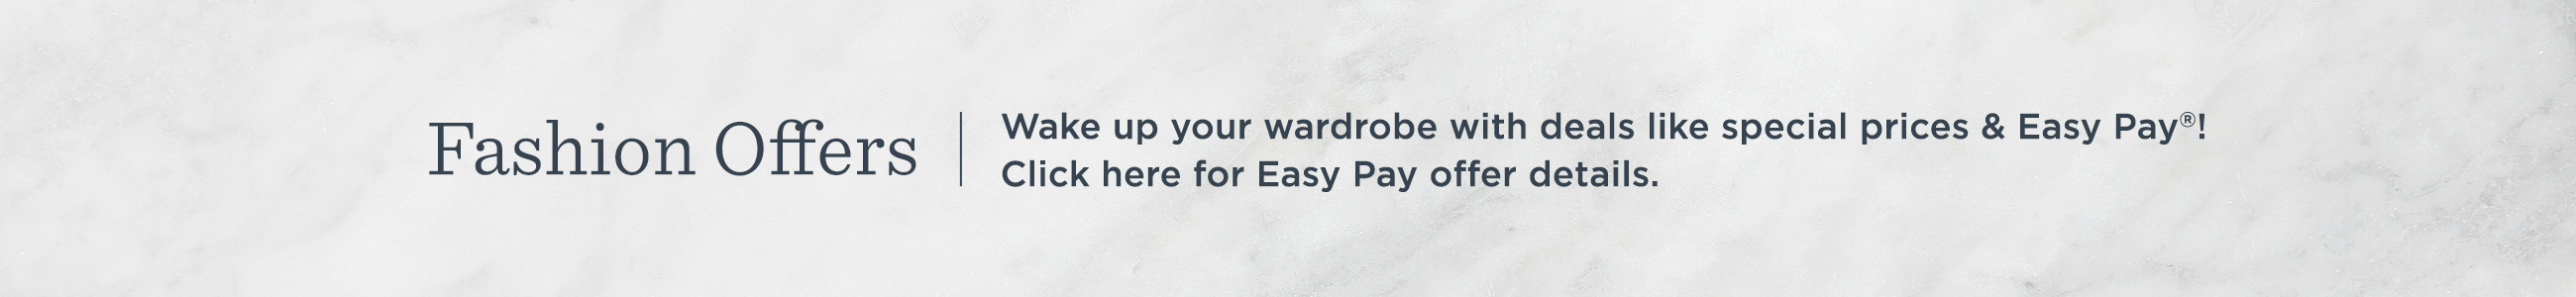 Fashion Offers. Wake up your wardrobe with deals like special prices & Easy Pay®!  — Click here for Easy Pay offer details.